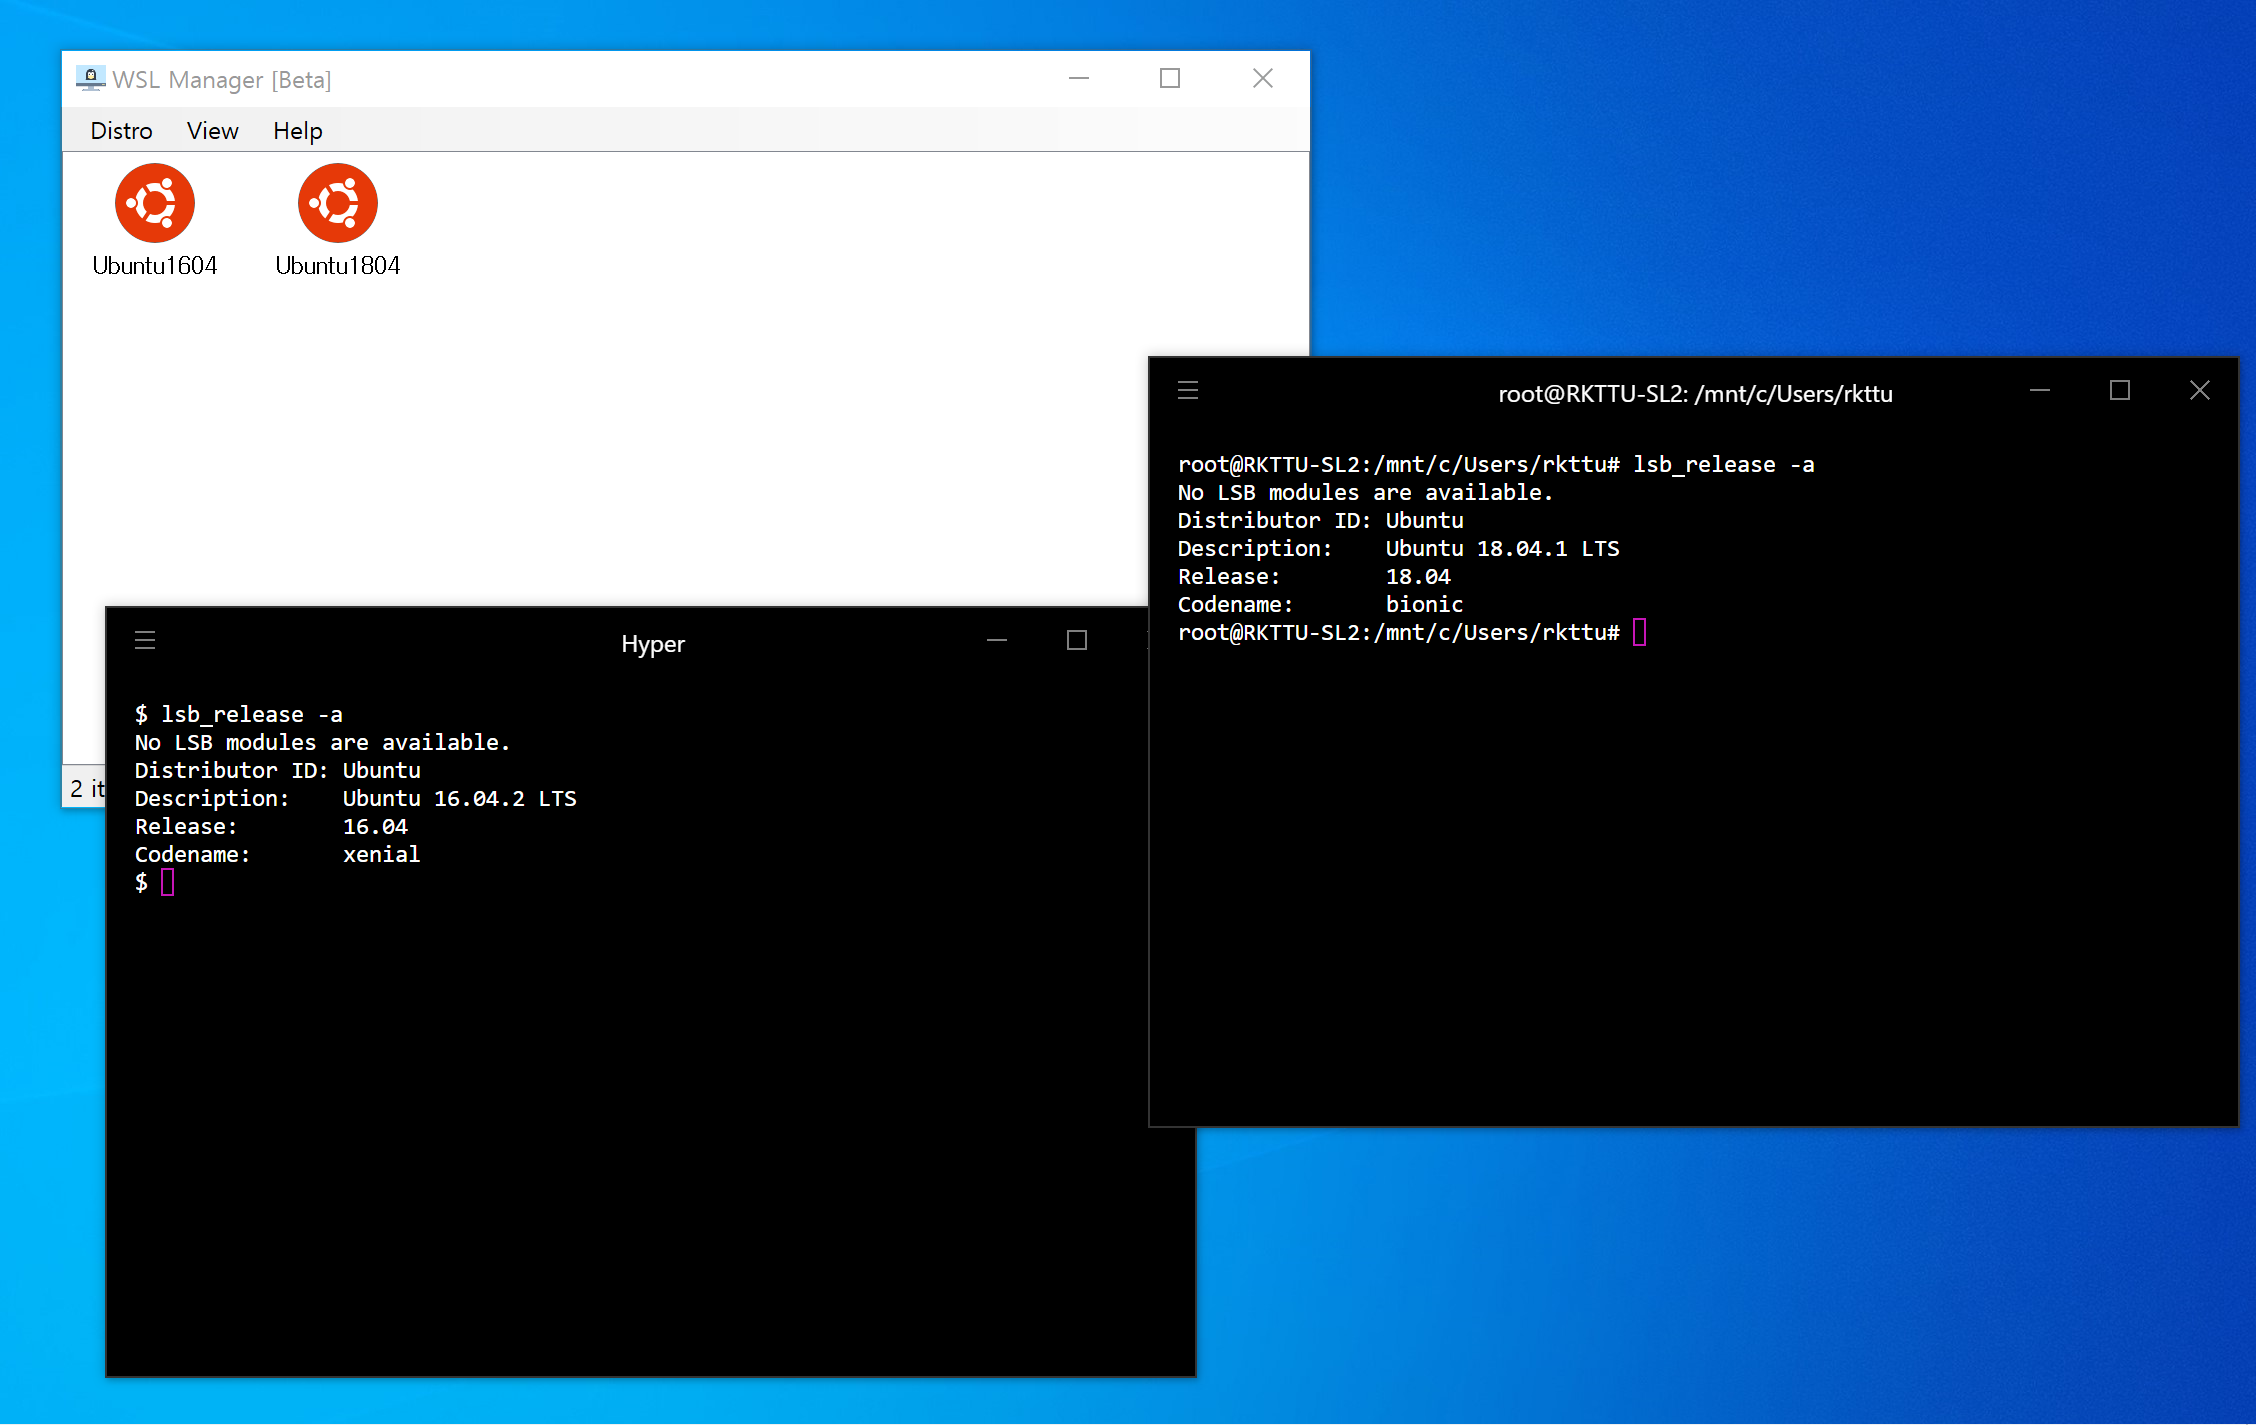 Windows 10 WSL Distro Manager GUI Tool - Web Design Tips